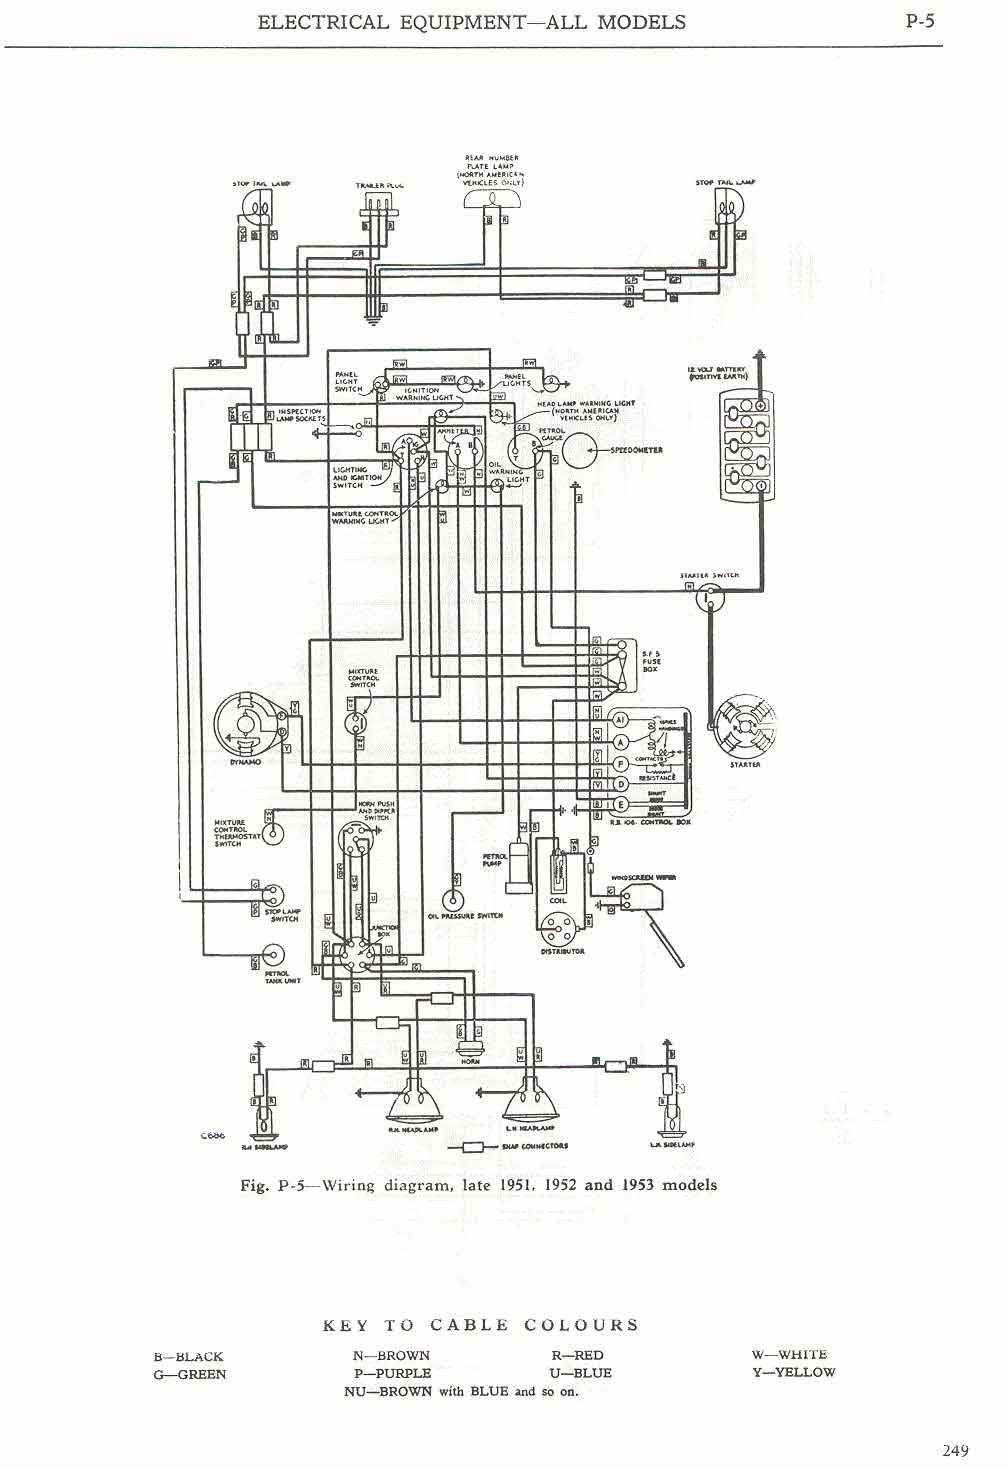 series 1 land rover wiring diagram excellent electrical wiring Land Rover Discovery 2 Wiring Diagram land rover electrical wiring diagrams wiring library rh 91 coding munity de land rover d90 wiring diagrams land rover discovery engine diagram